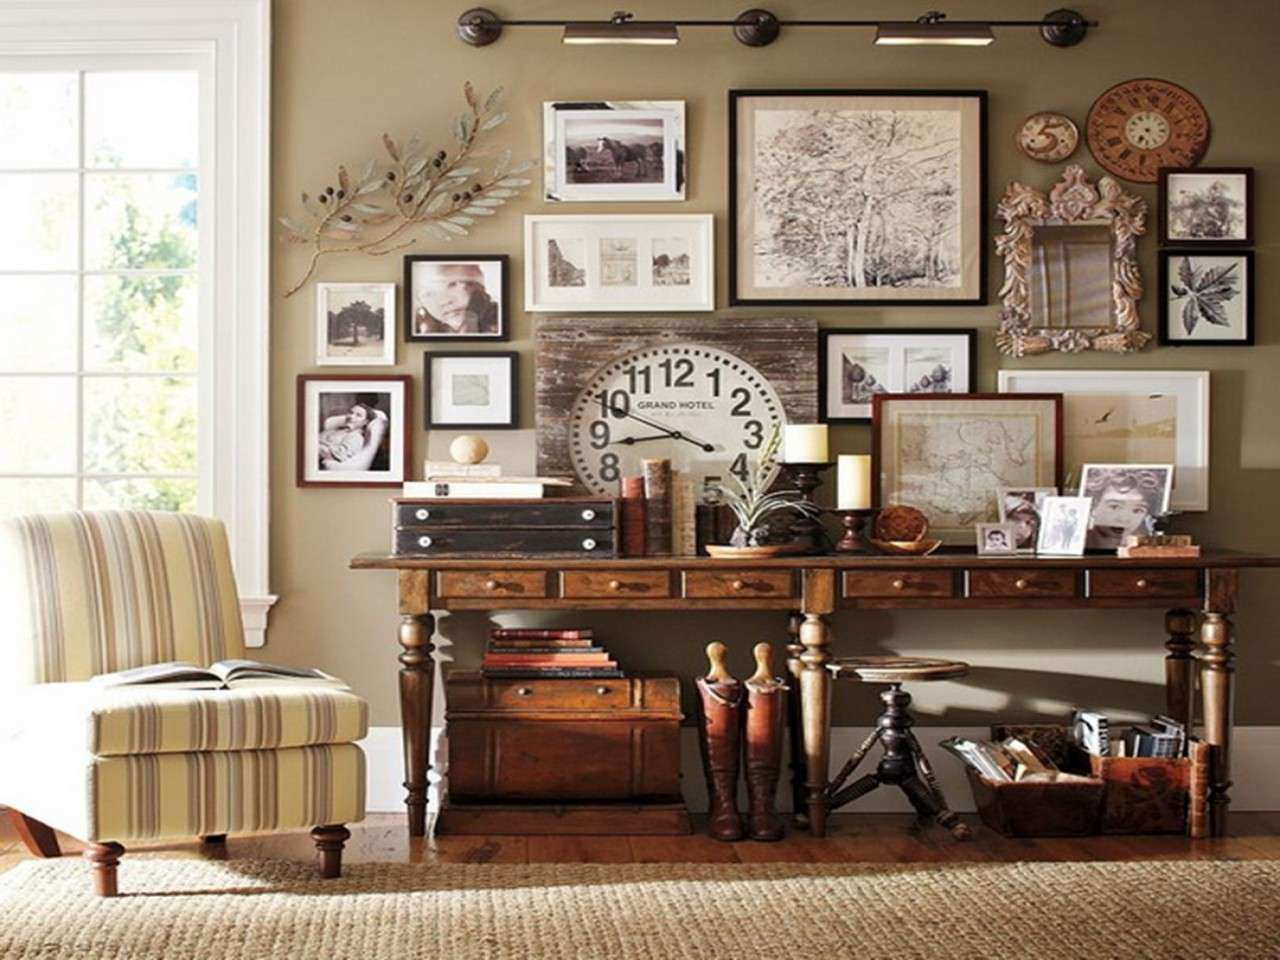 Pottery Barn Wall Decor Beautiful Ceiling Designs For Dining Room